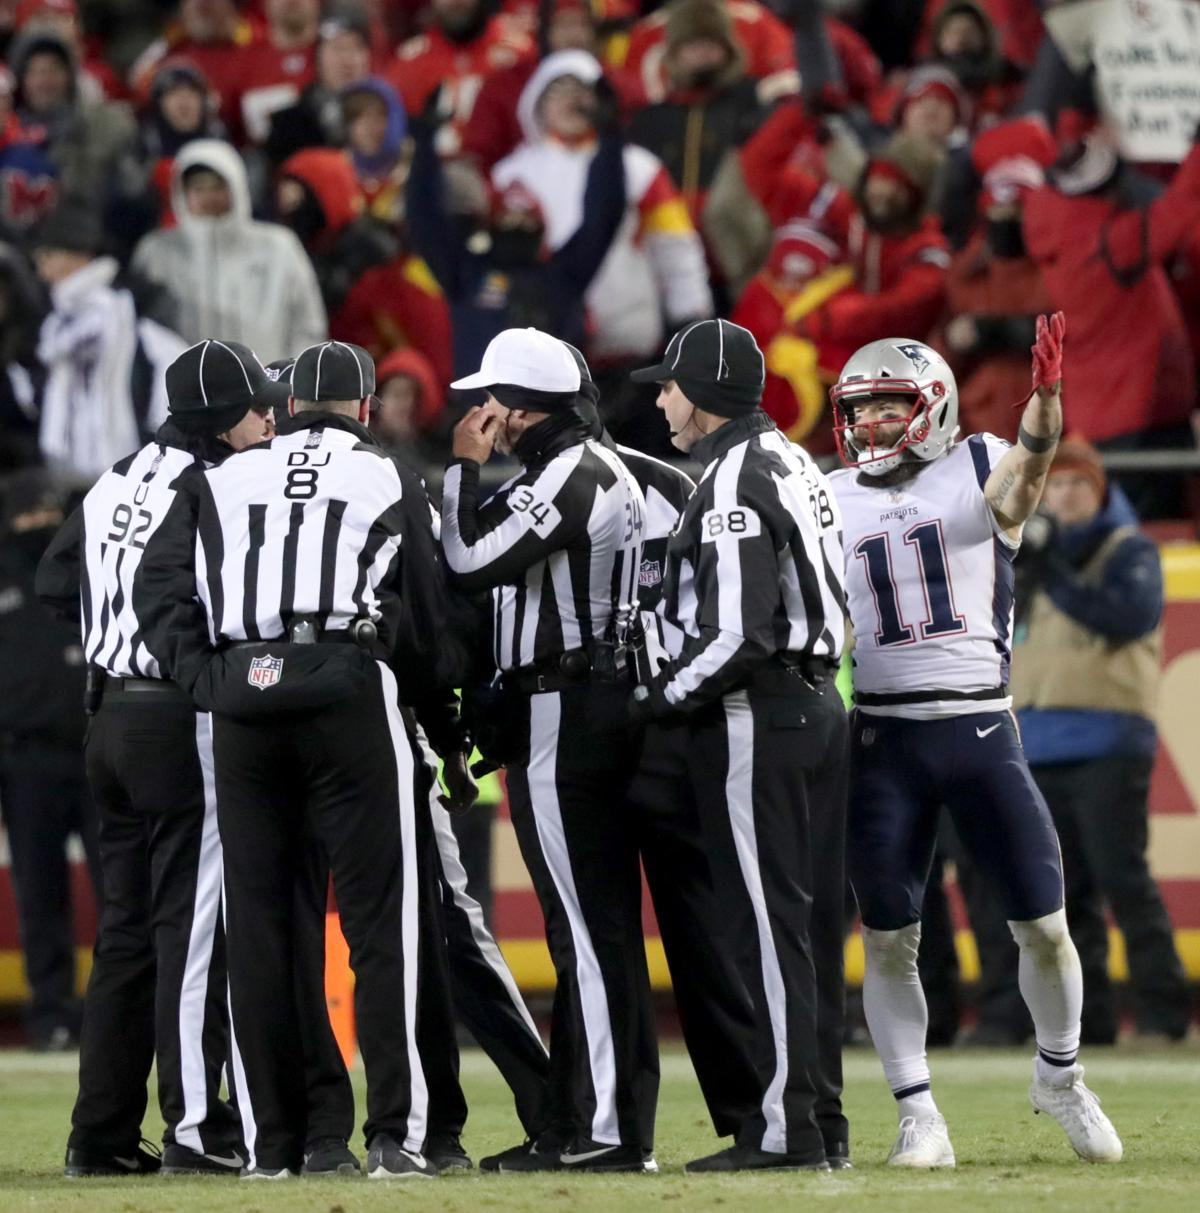 Patriots Survive A Scare When Replay Overturns Call